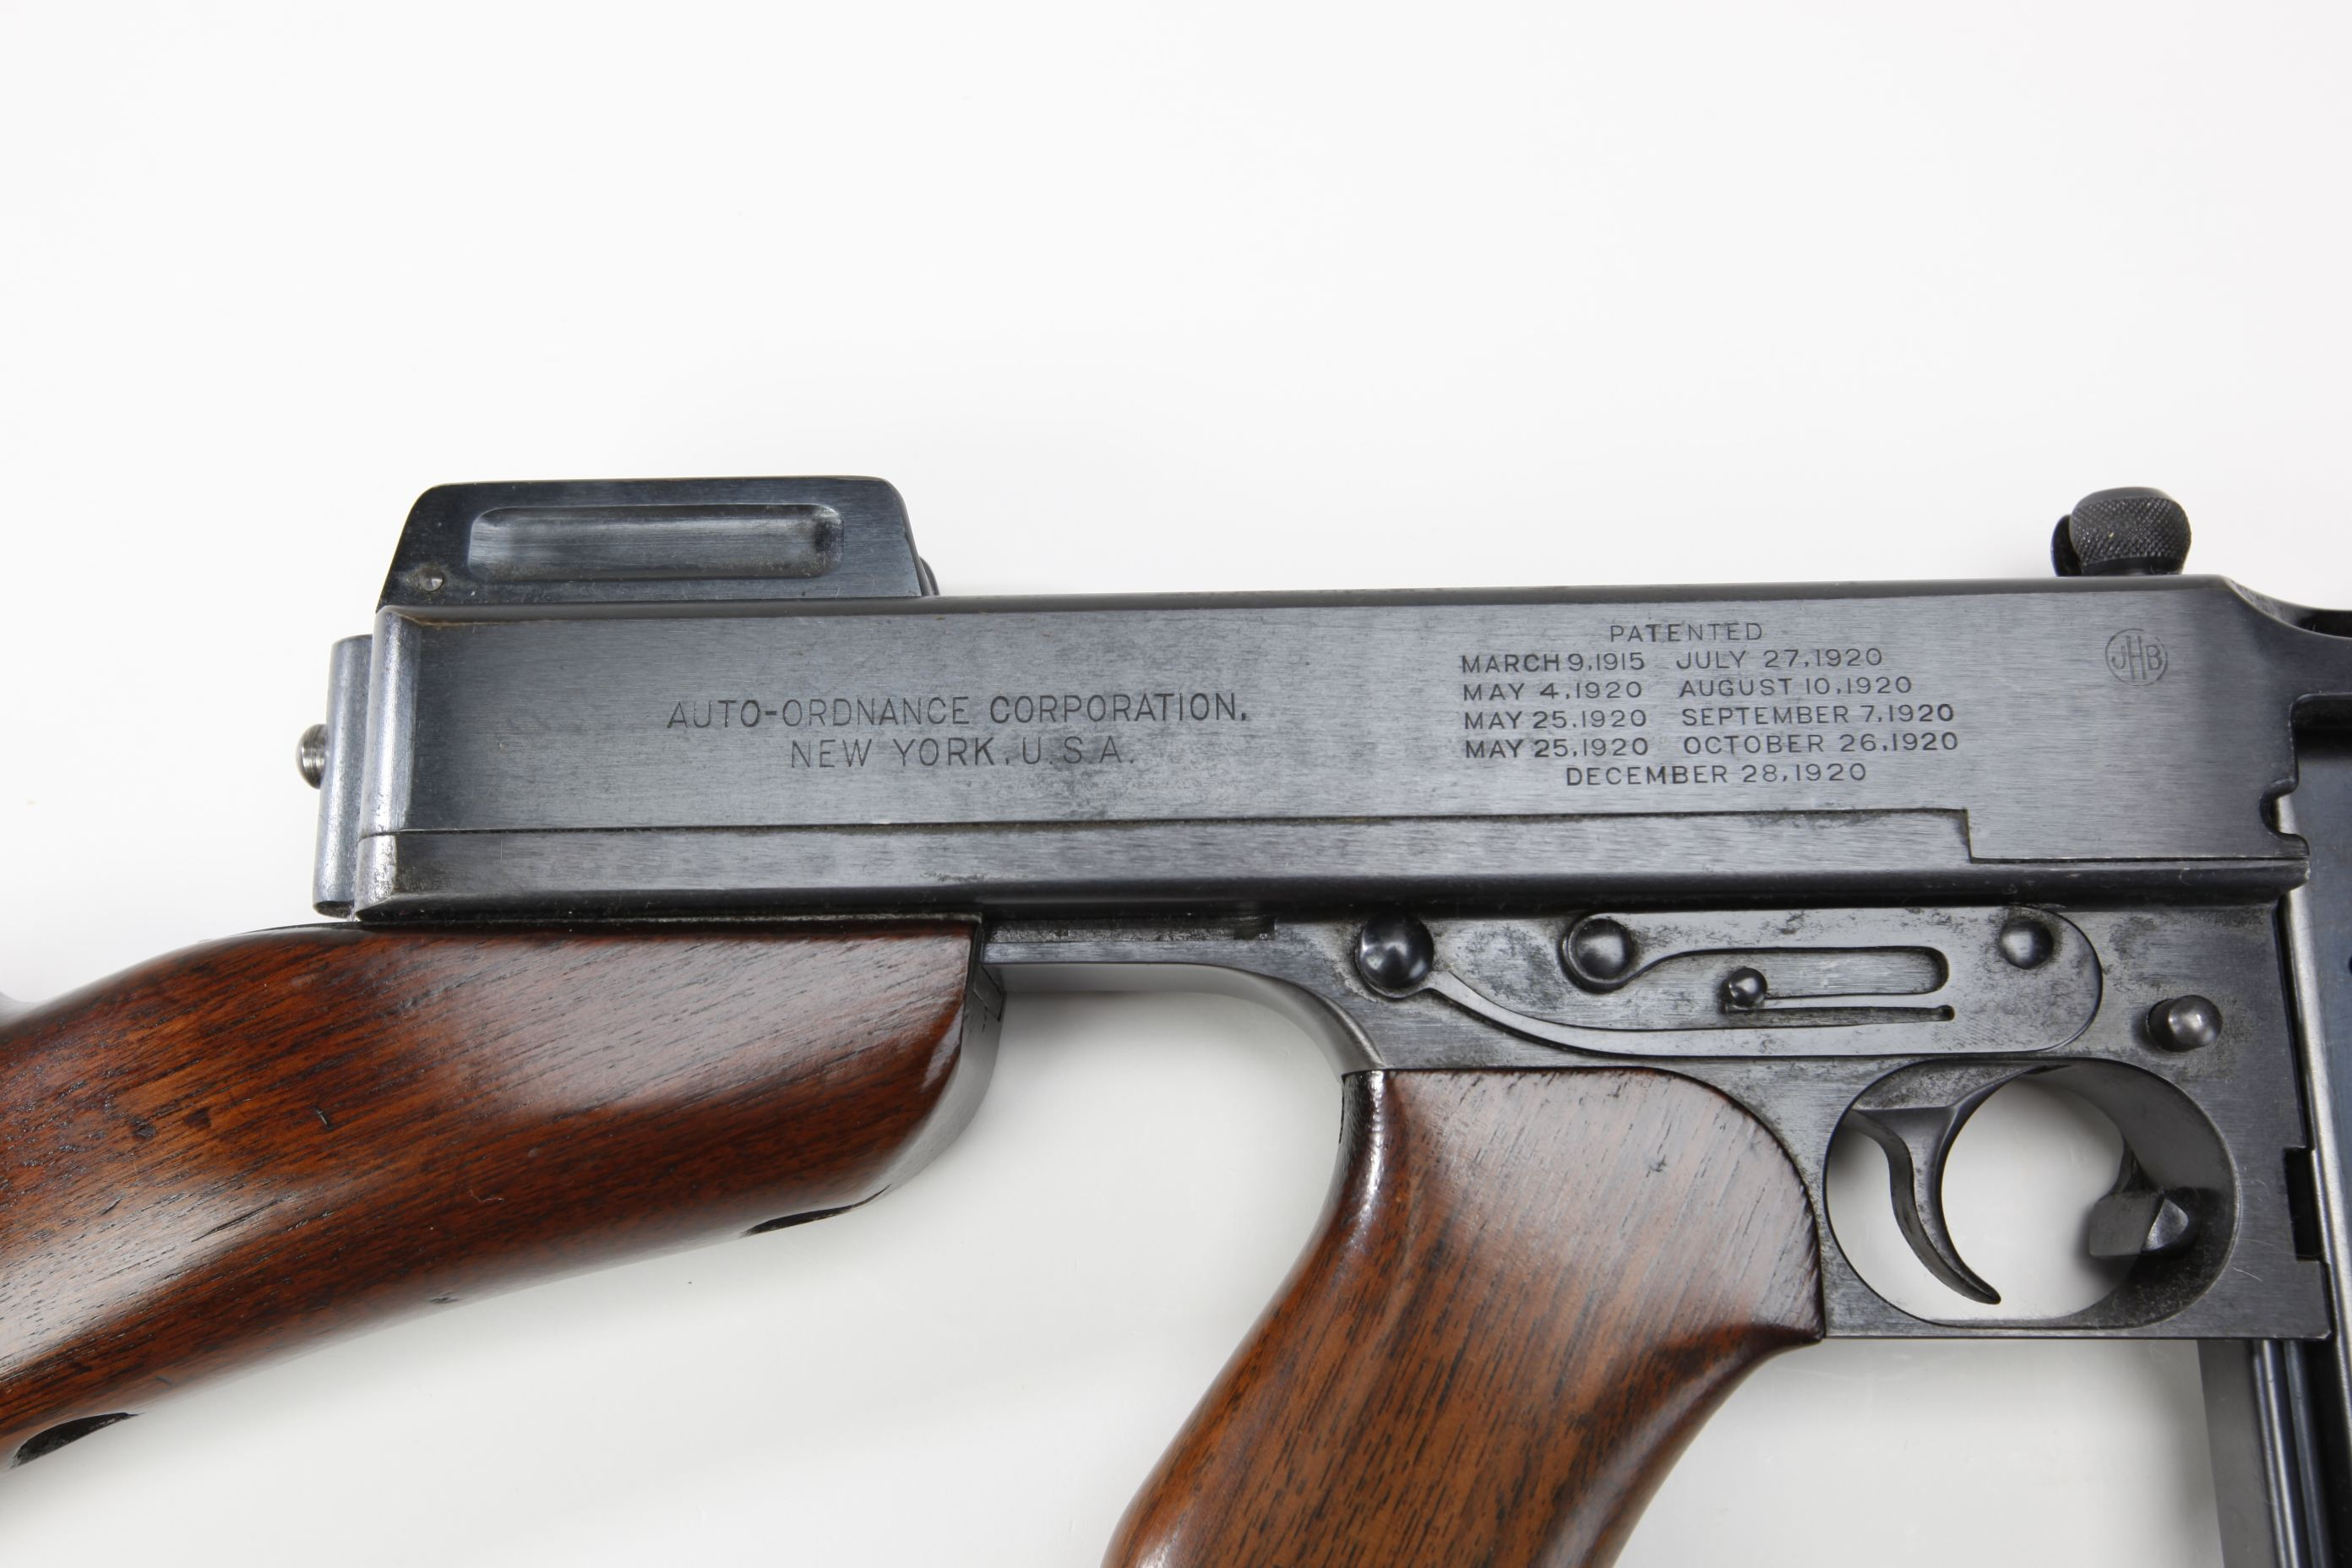 Mint Thompson Submachine Gun